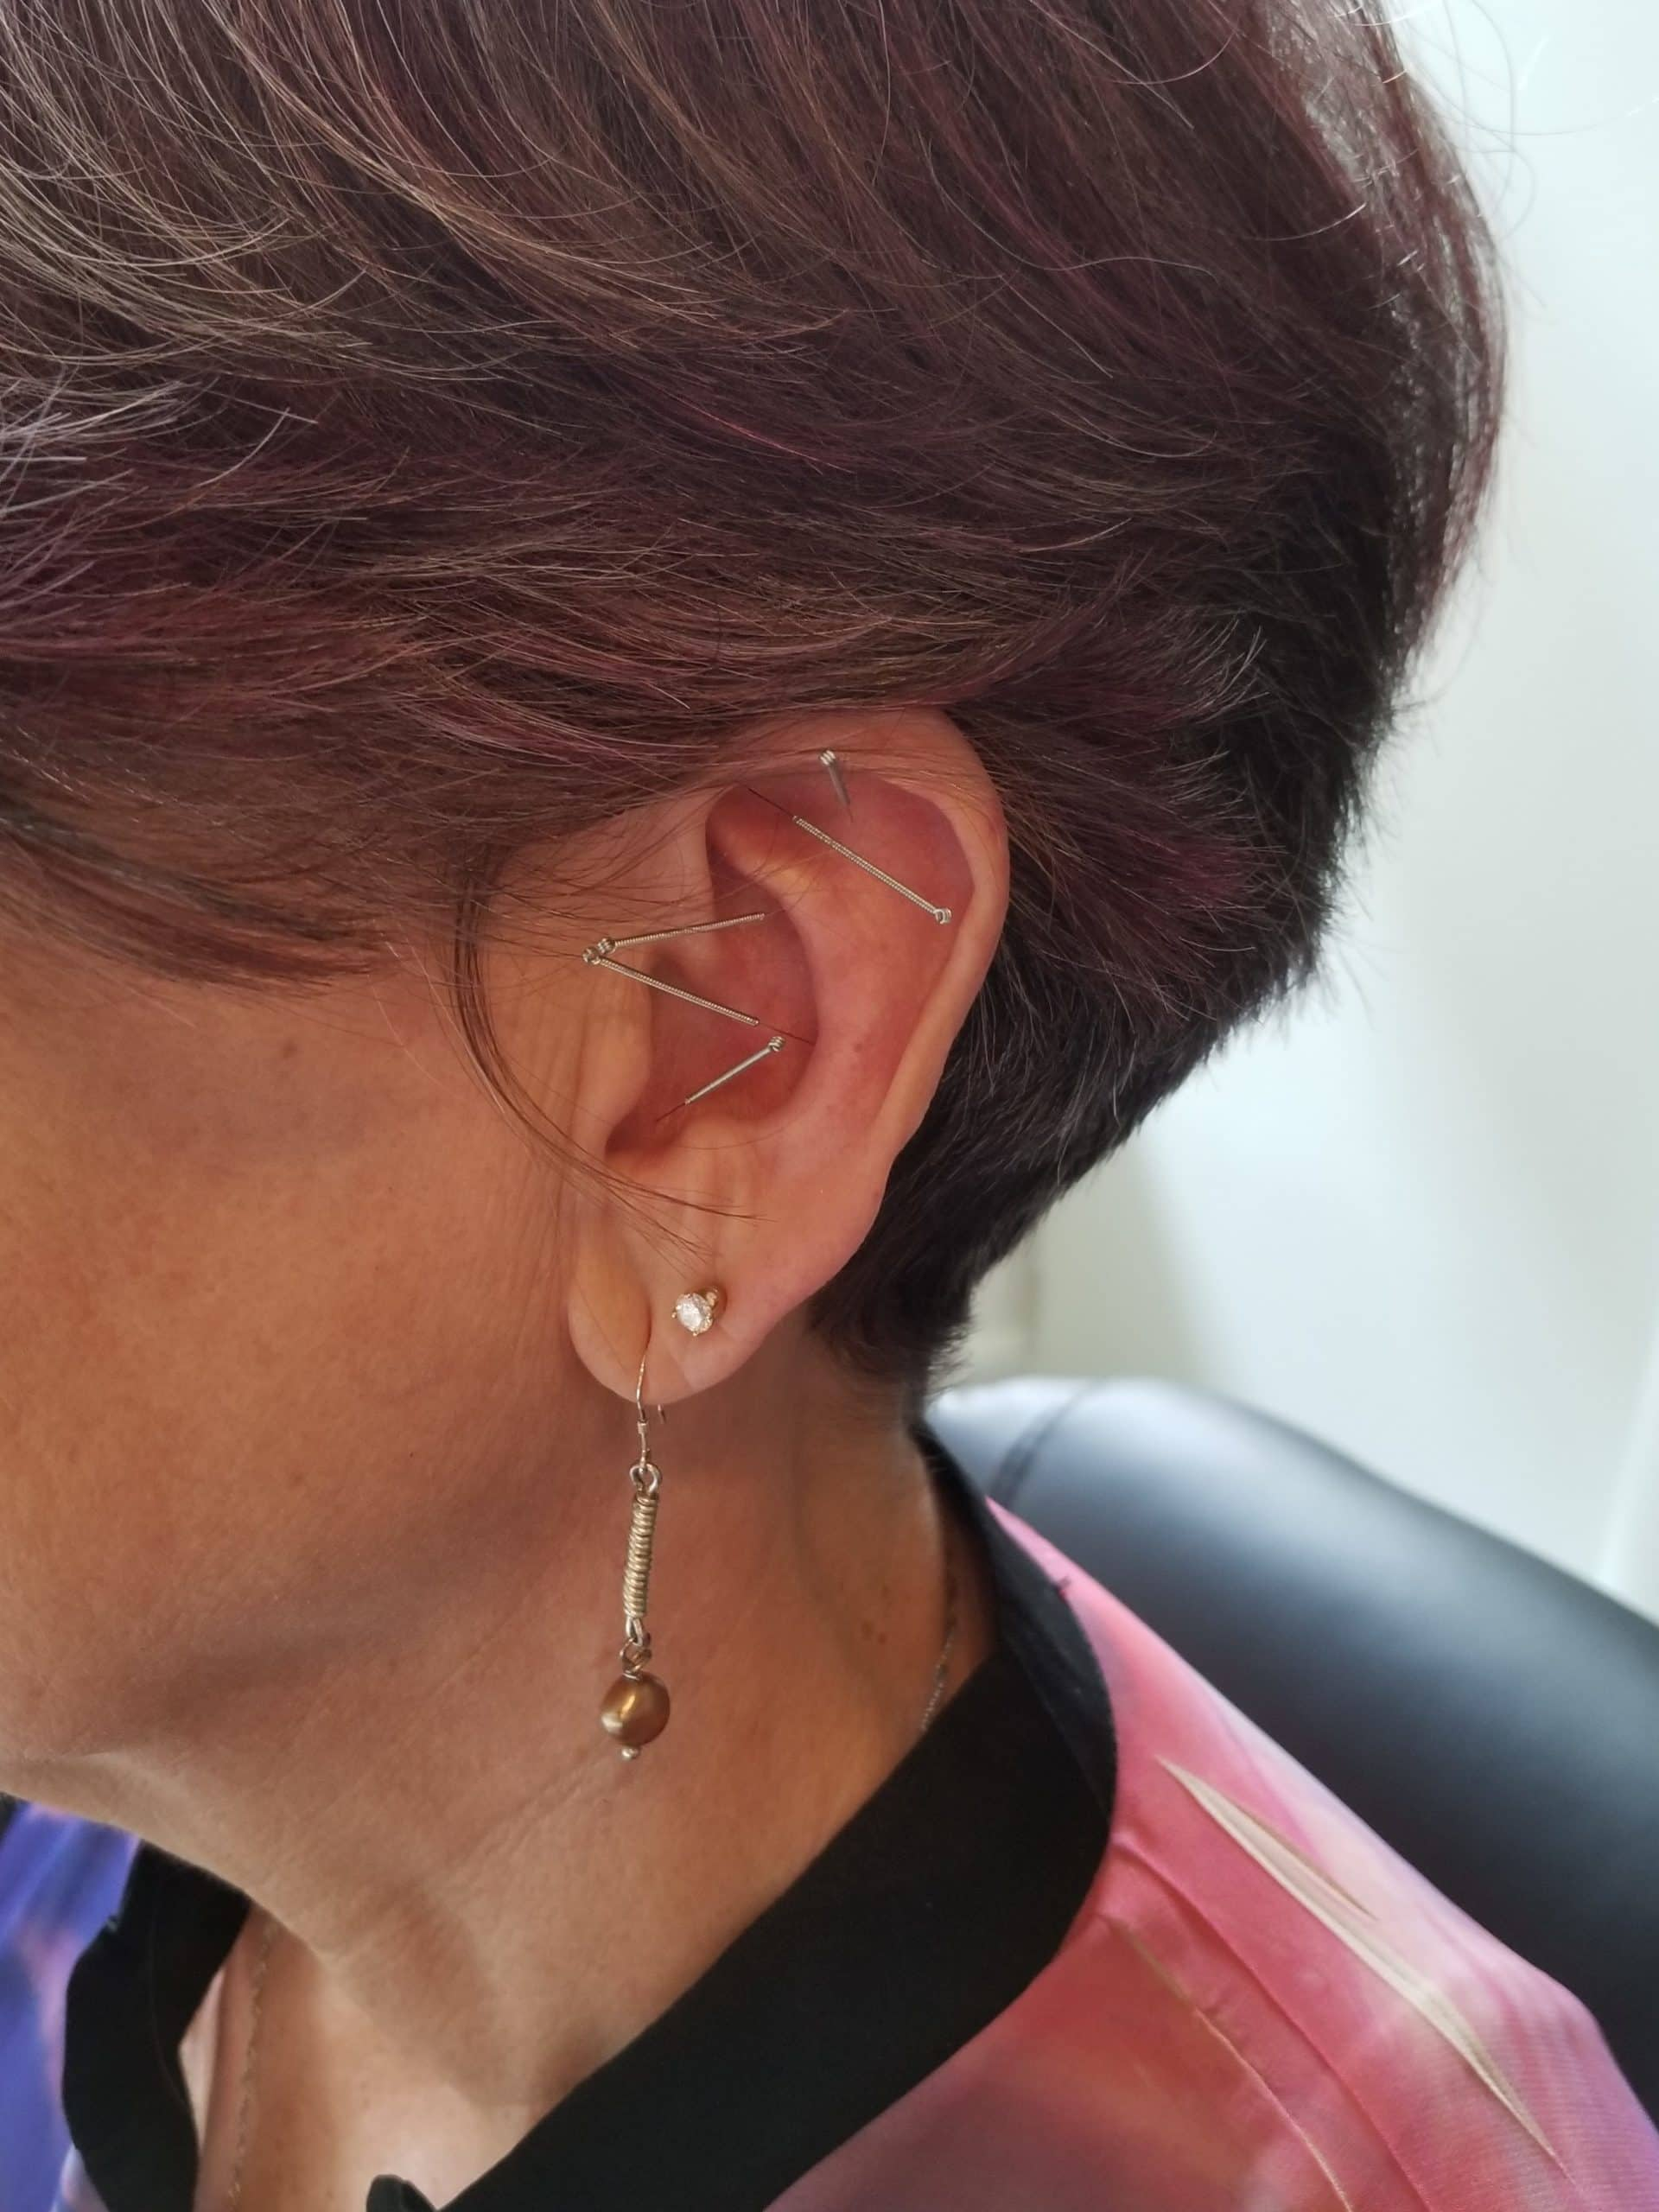 NADA protocol auricular acupuncture five points ear